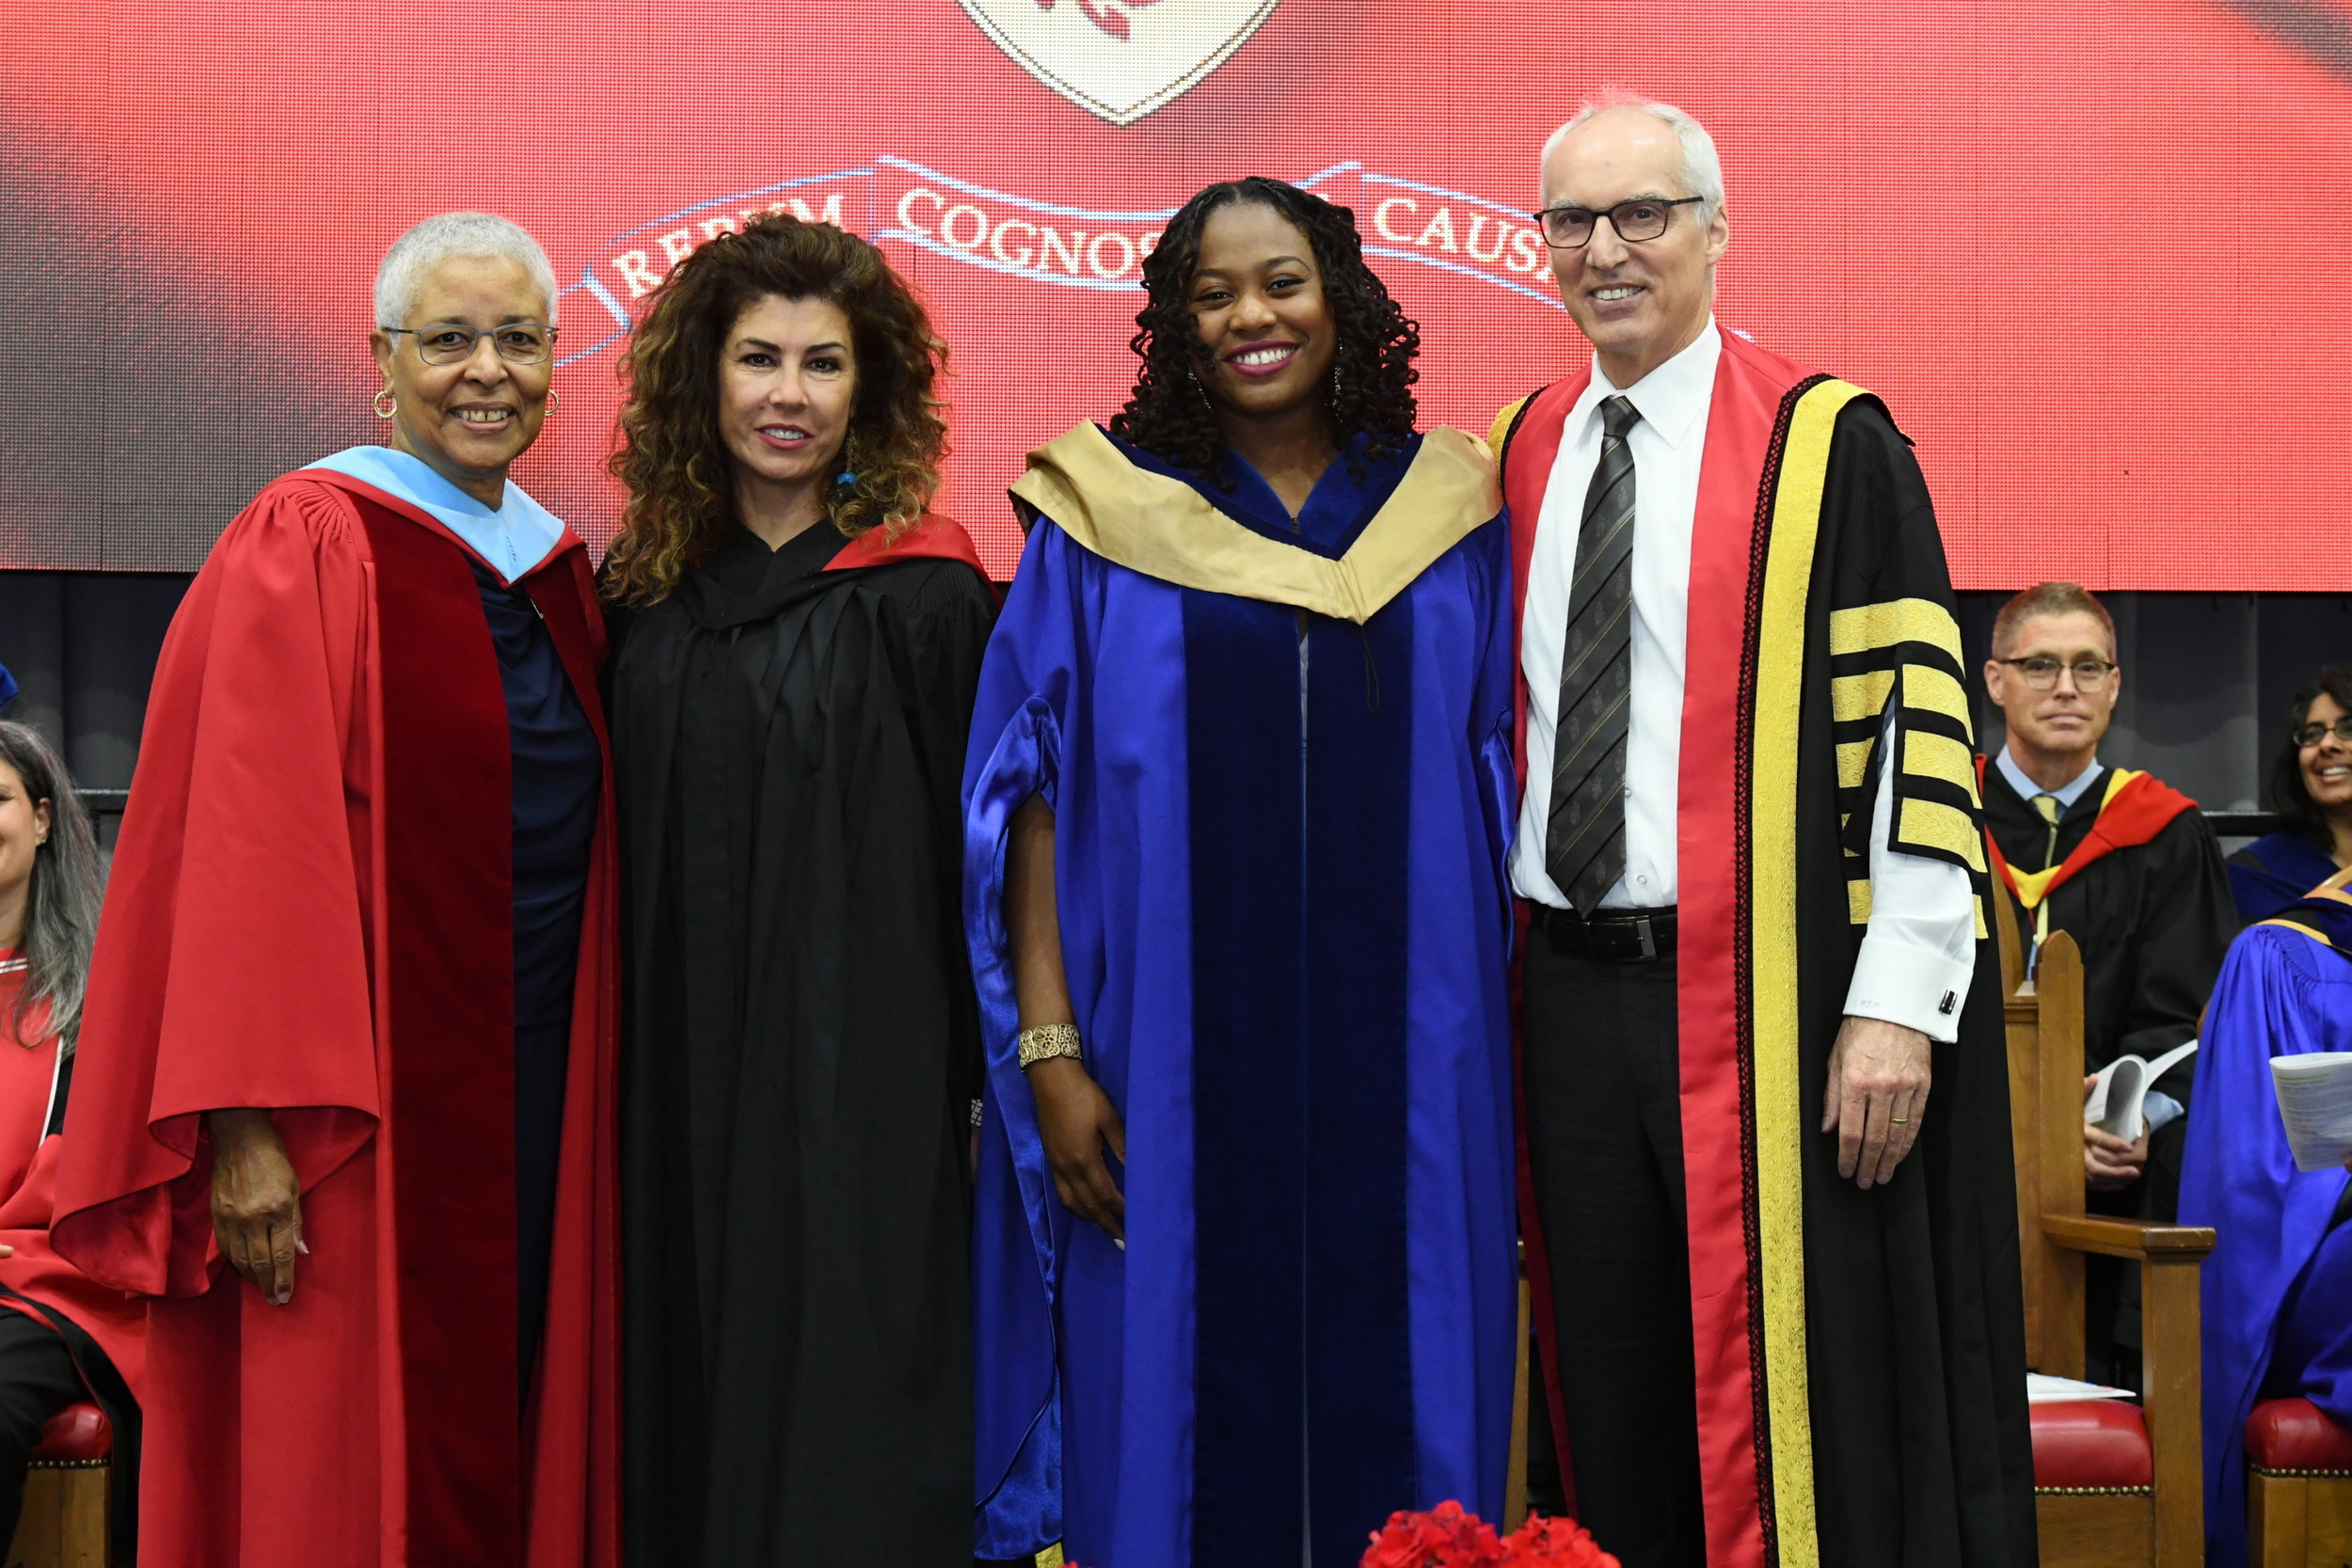 Dr. Rashelle Litchmore, proudly wearing a hood from this year's IMP graduation, with Mary Anne Chambers (l), doctoral advisor Safdar Saba and University of Guelph President & Vice-Chancellor Dr. Franco Vaccarino